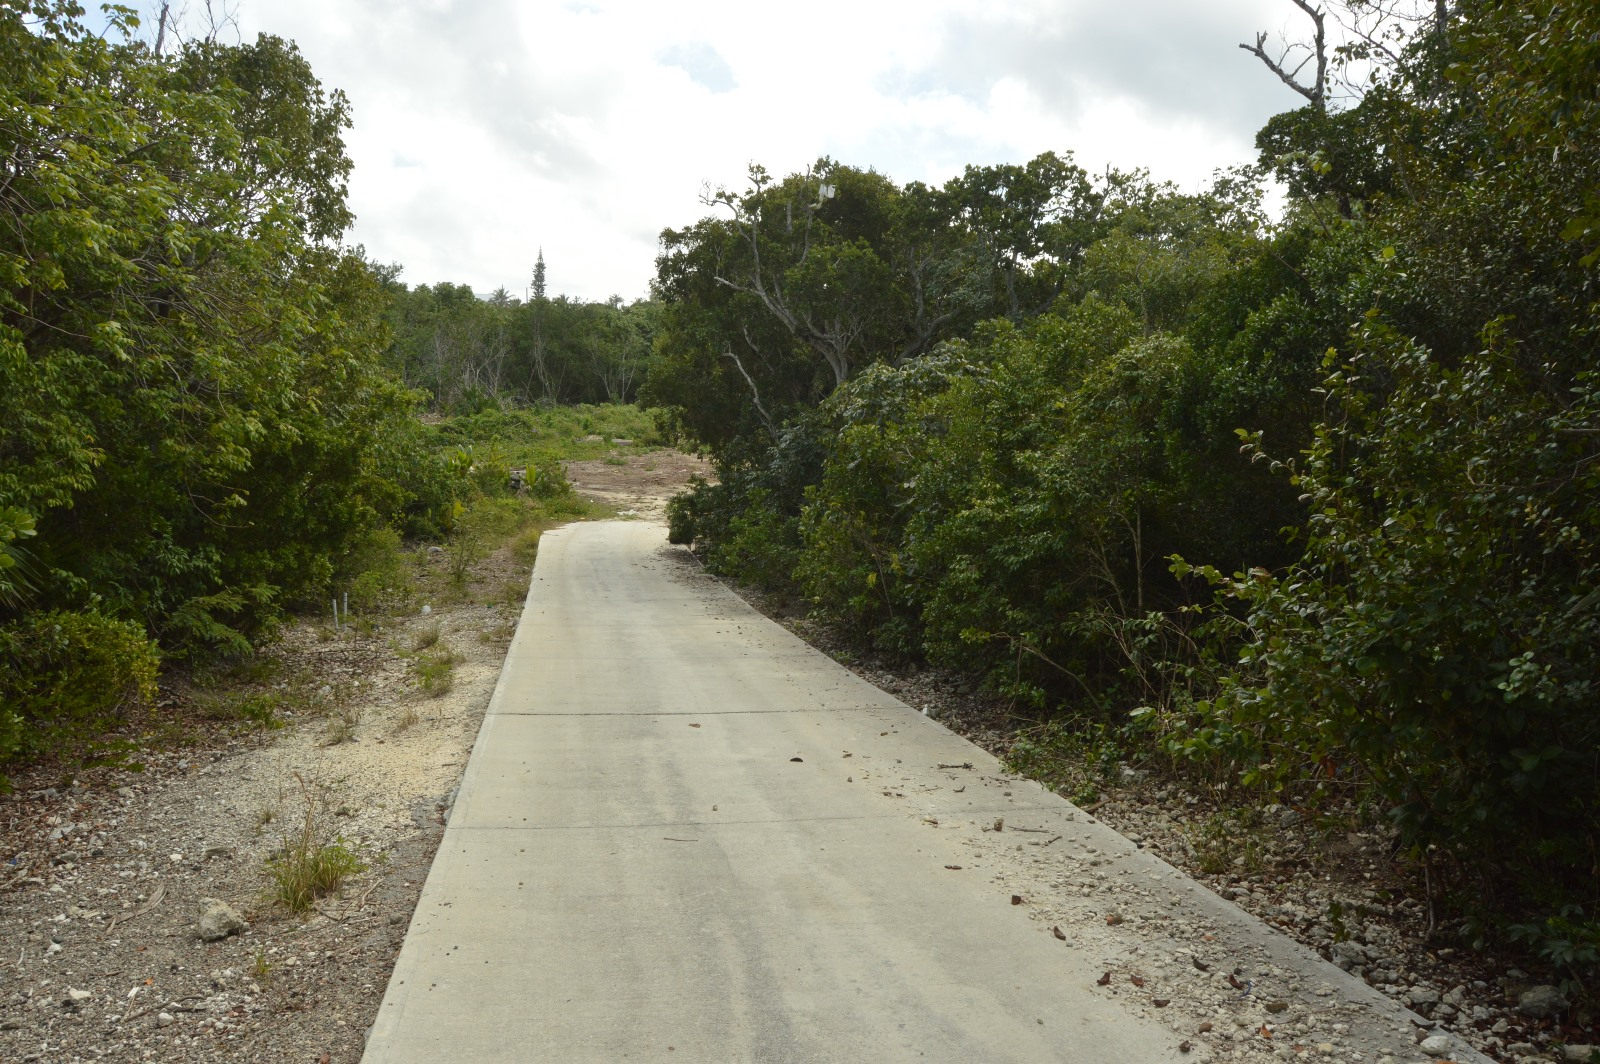 Land for Sale at Great Development Oppurtunity in Elbow Cay, Abaco - MLS 29196 Elbow Cay Hope Town, Abaco, Bahamas